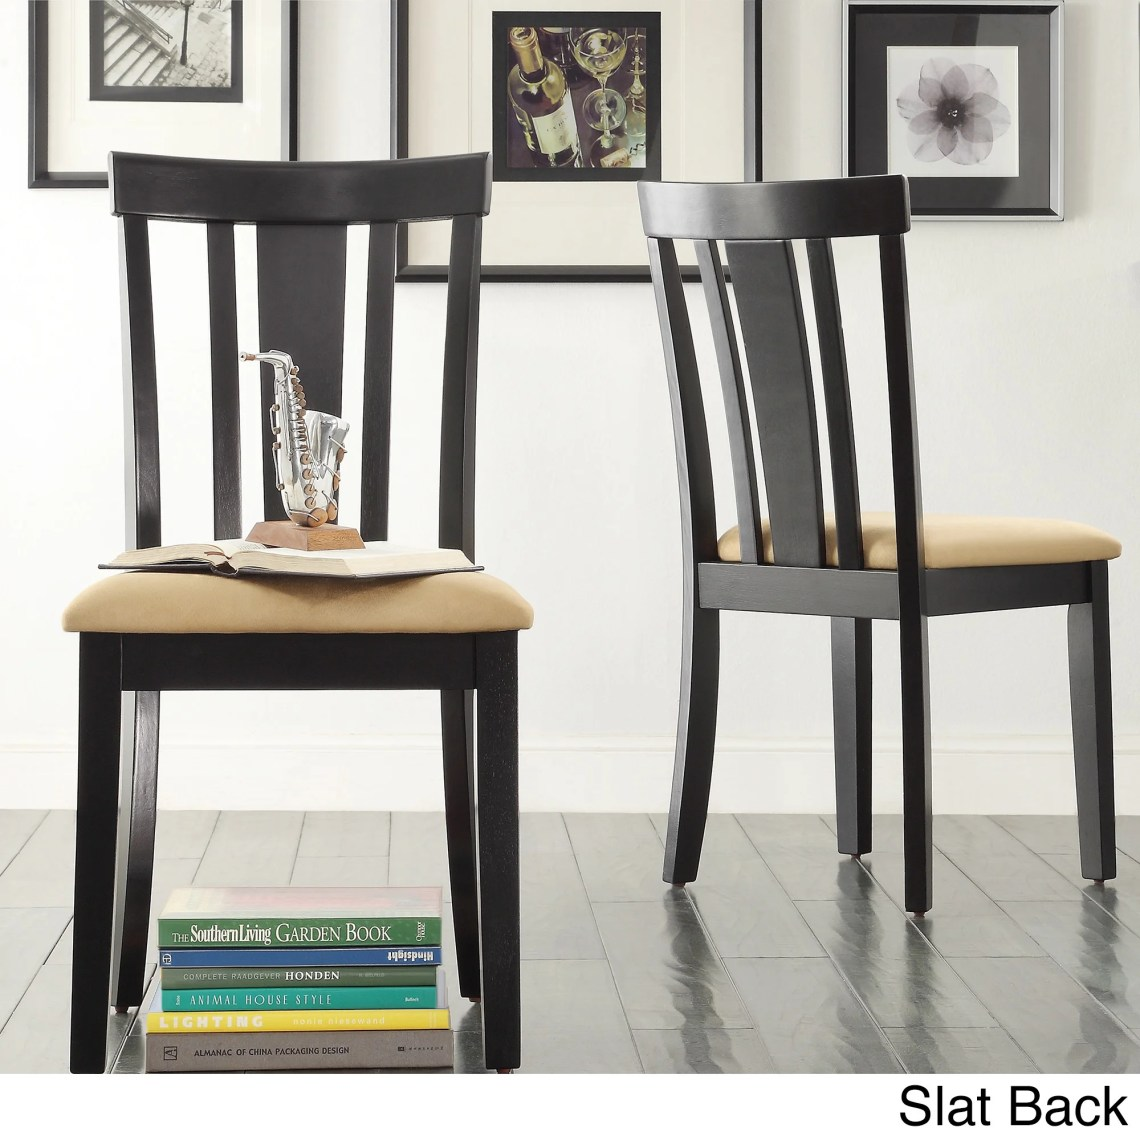 Animal House Back Bar - Wilmington-Black-Window-Back-5-piece-Dining-Set-by-iNSPIRE-Q-Classic-92e7c72a-3c0f-4240-a47d-6bdbf4678b0a_Popular Animal House Back Bar - Wilmington-Black-Window-Back-5-piece-Dining-Set-by-iNSPIRE-Q-Classic-92e7c72a-3c0f-4240-a47d-6bdbf4678b0a  You Should Have_98962.jpg